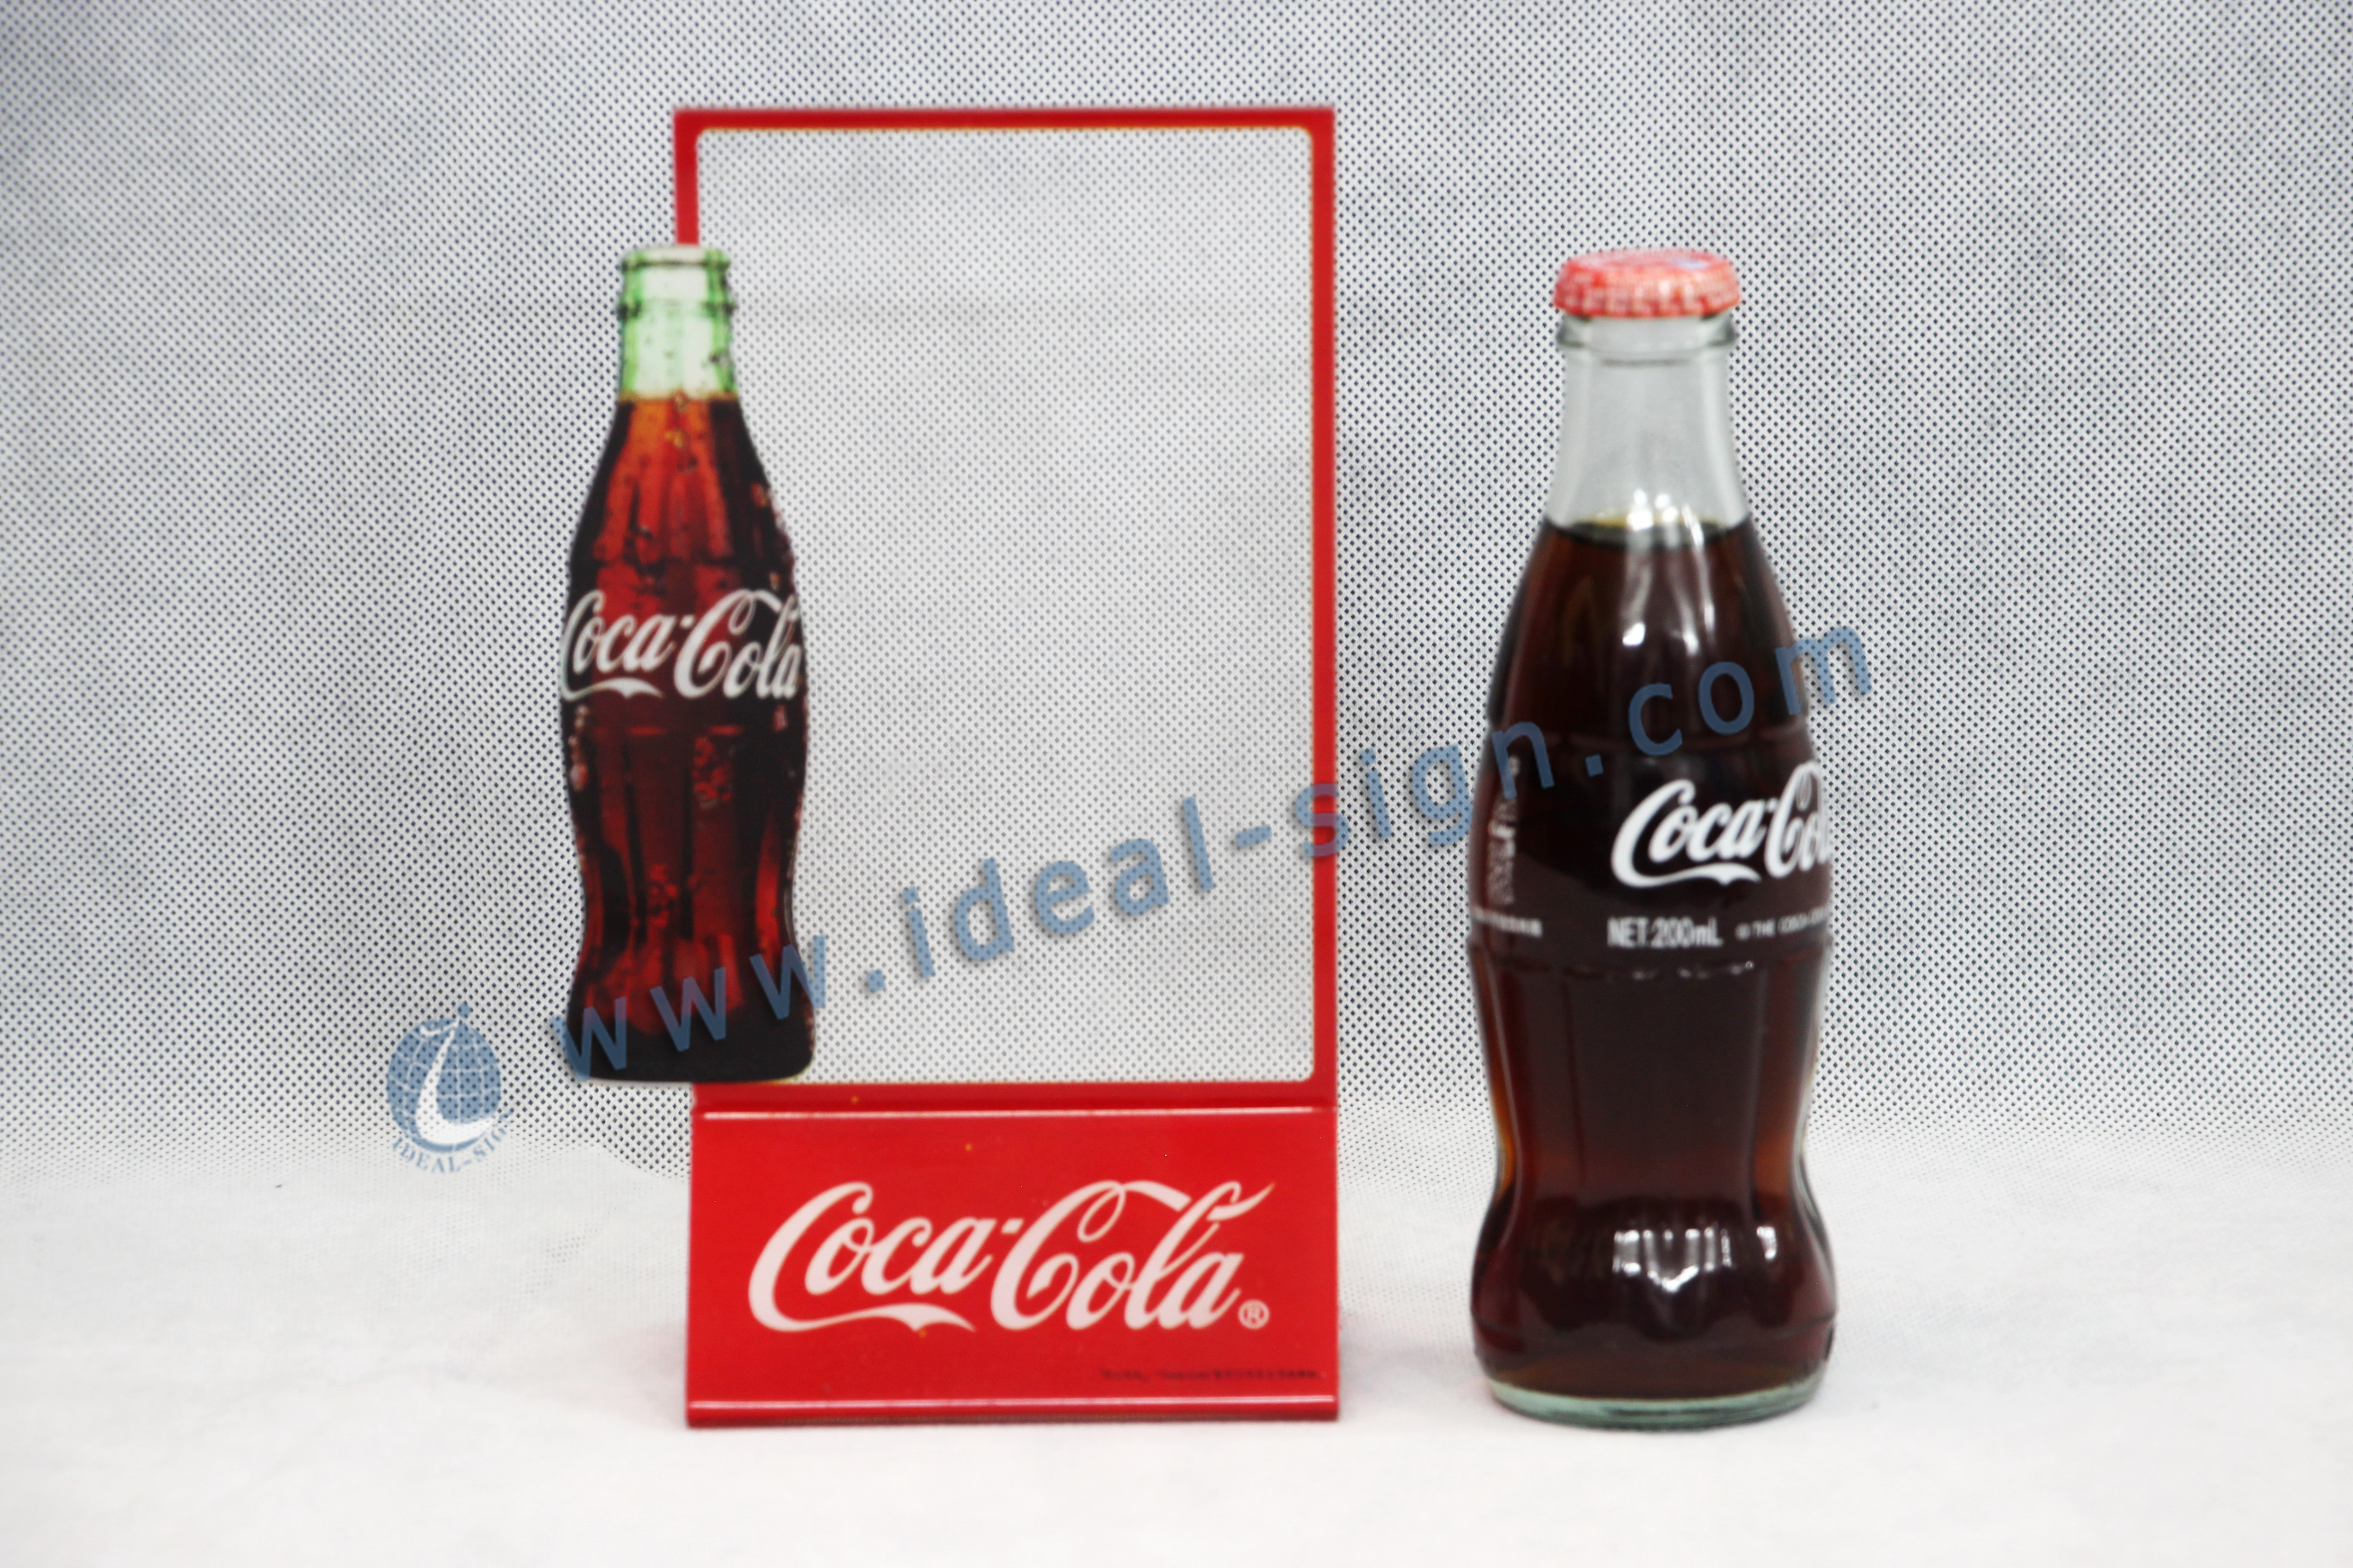 Coca Cola Menu Display